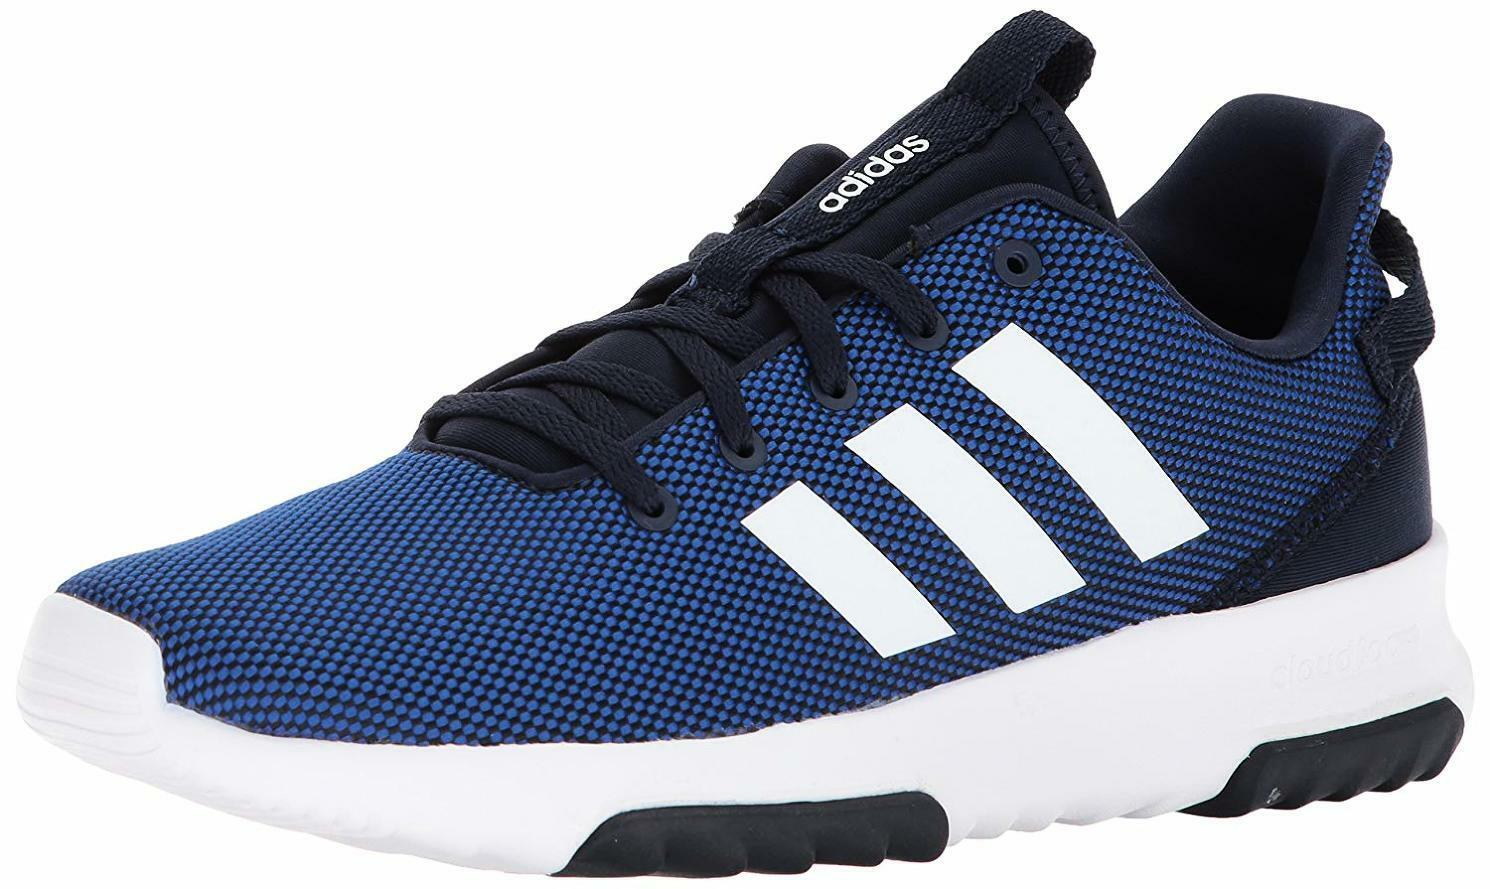 Adidas Men's Cf Racer Tr Running shoes, - Choose SZ color